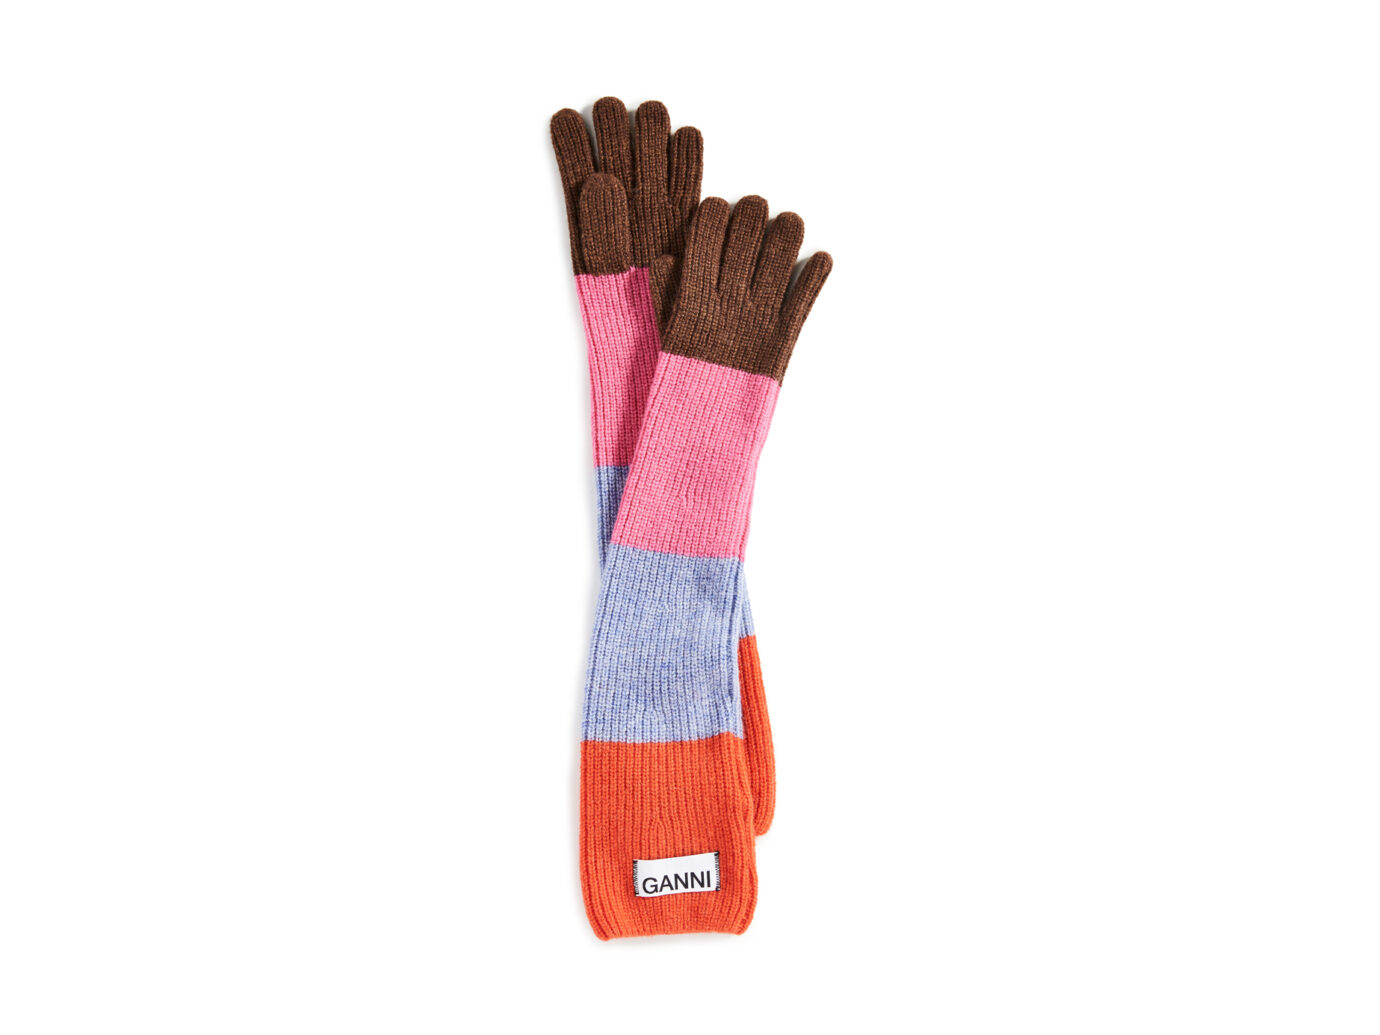 Ganni Knit Gloves